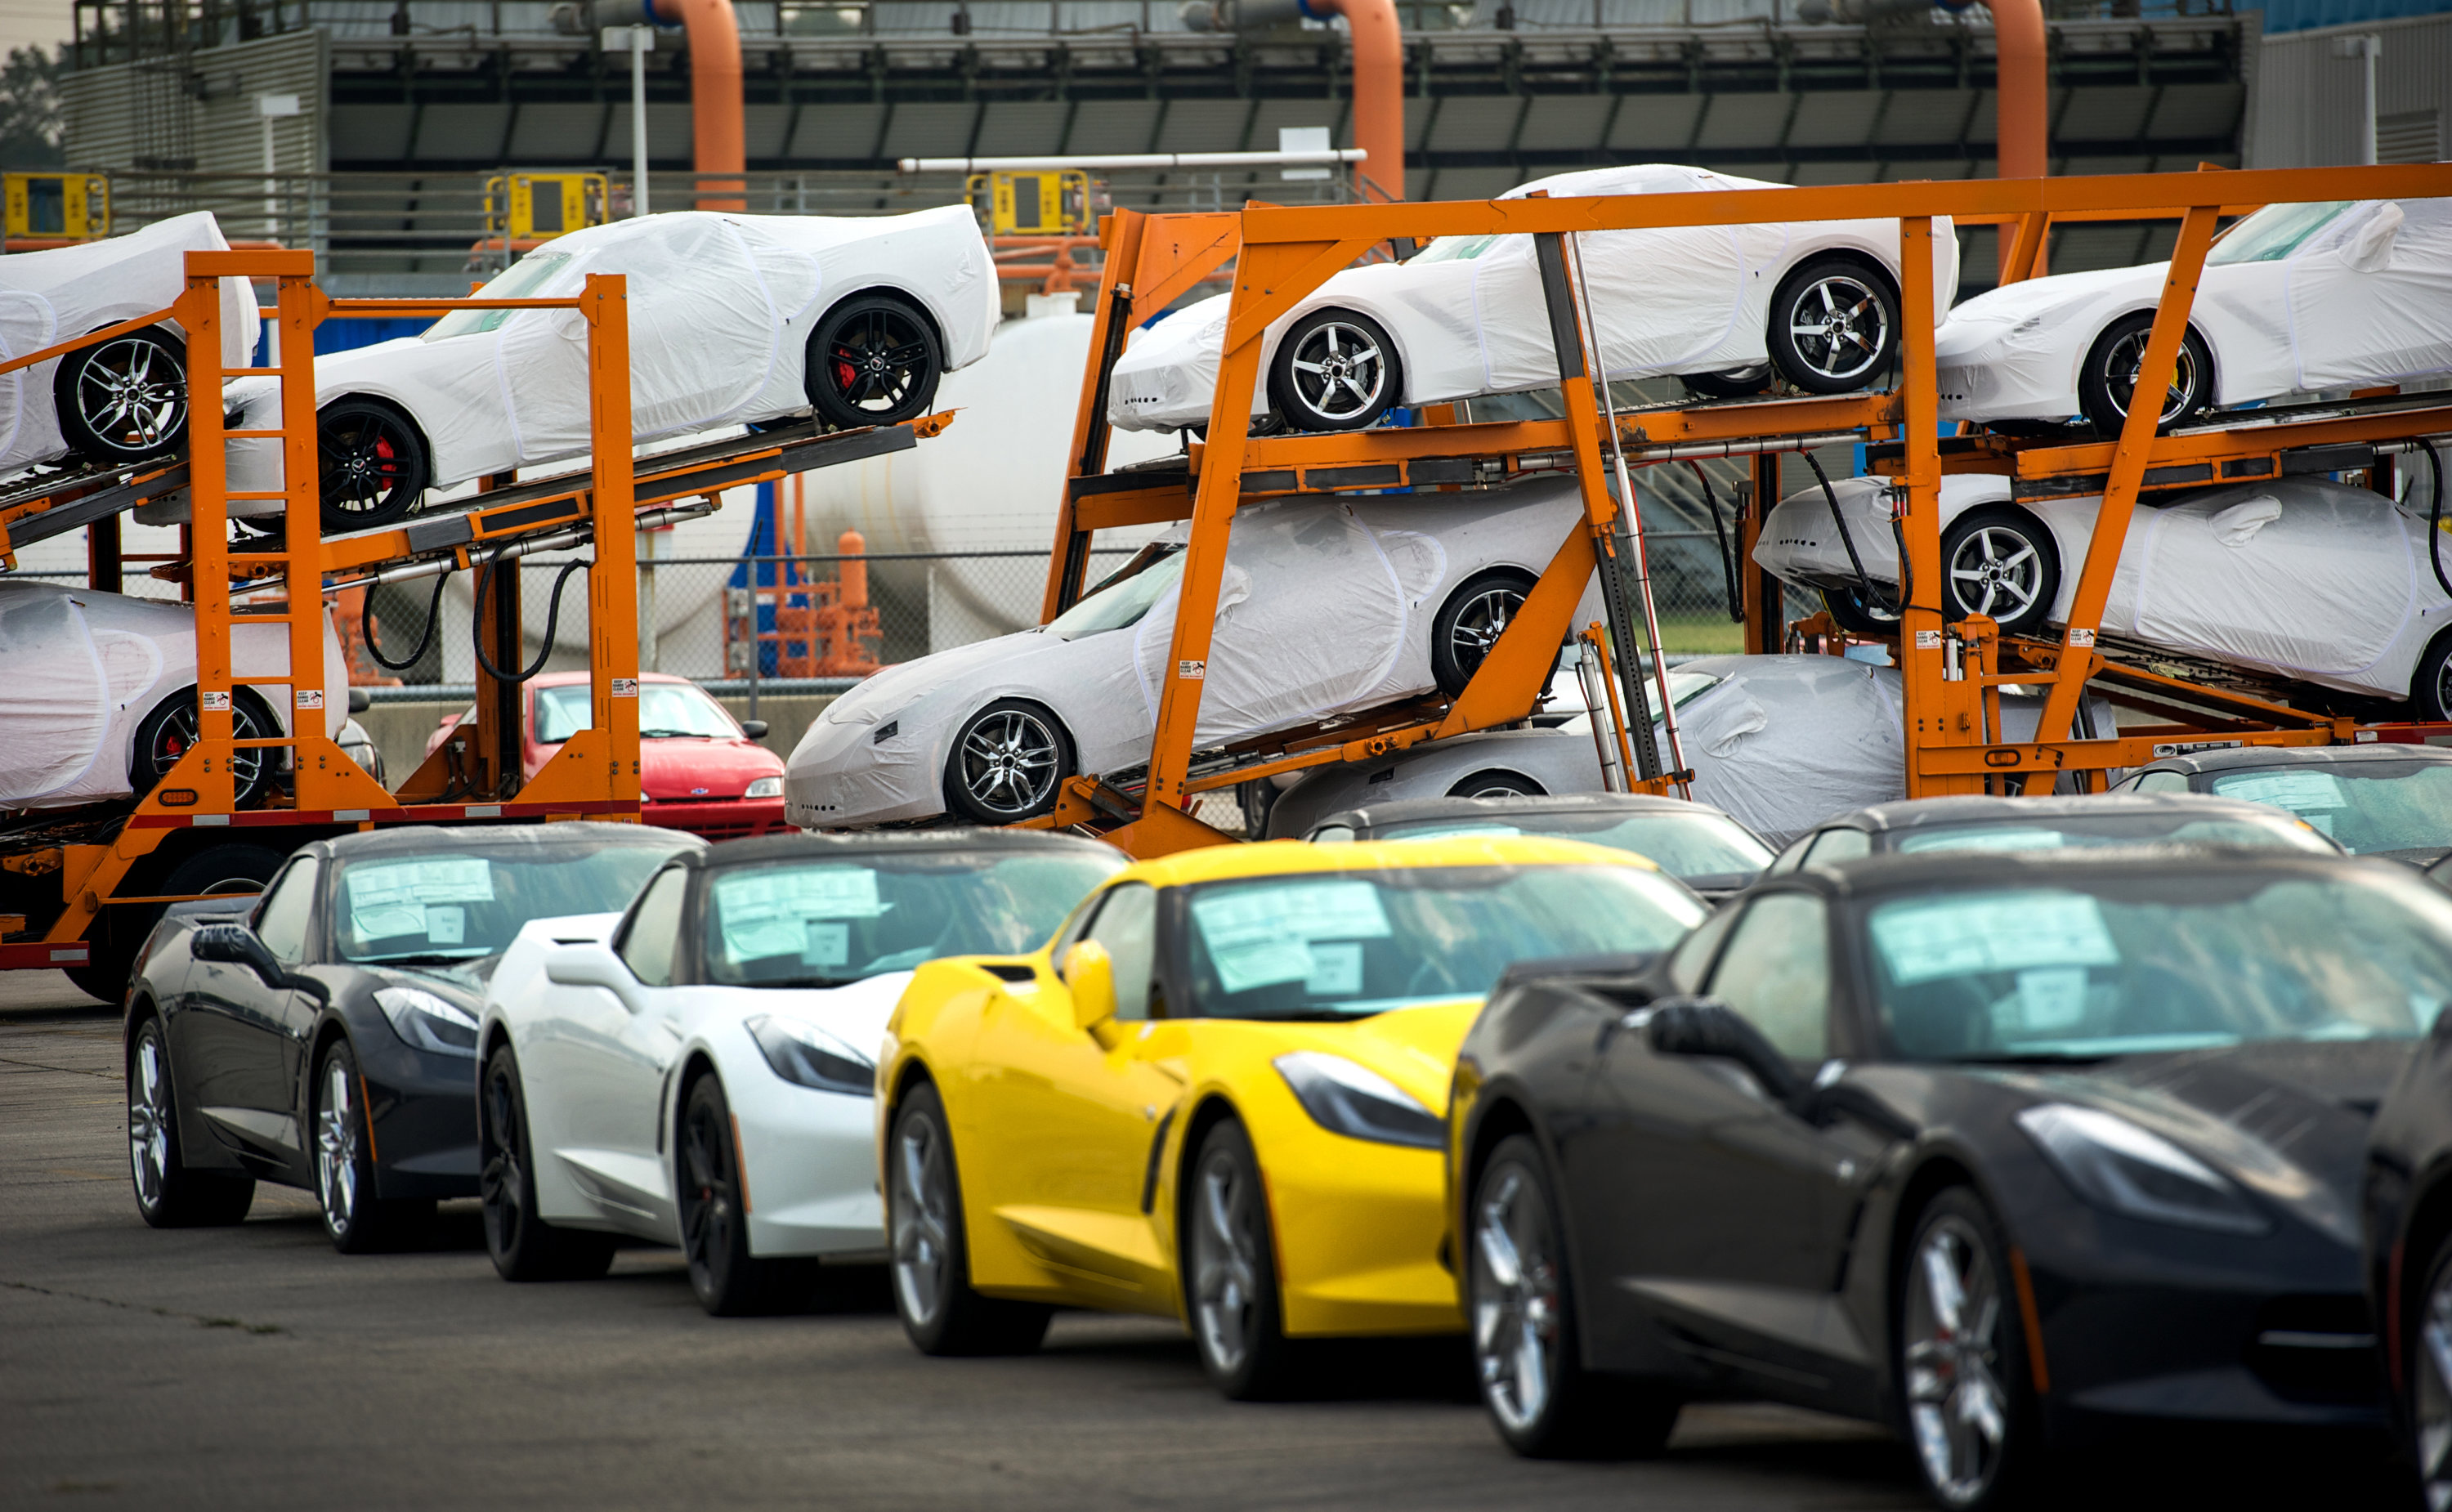 Corvette Factory in Kentucky Gets $439 Million for New Paint Shop